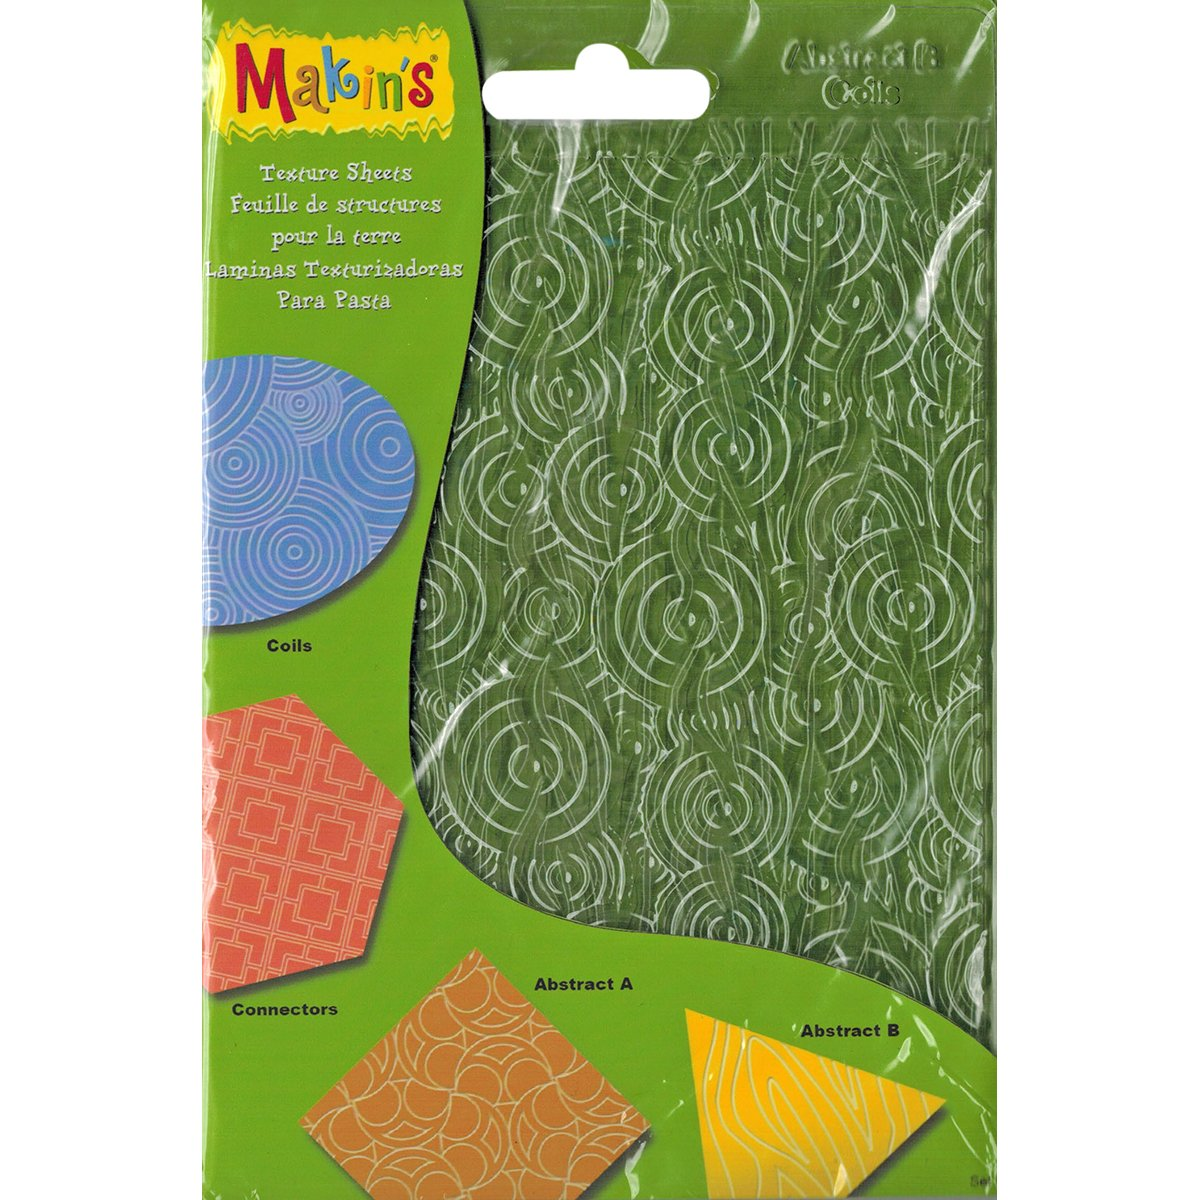 Makin's USA Clay Texture Sheets 7X5.5 4/Pkg-Set H (Coils, Connectors & Abstracts) Makin's USA M380-8